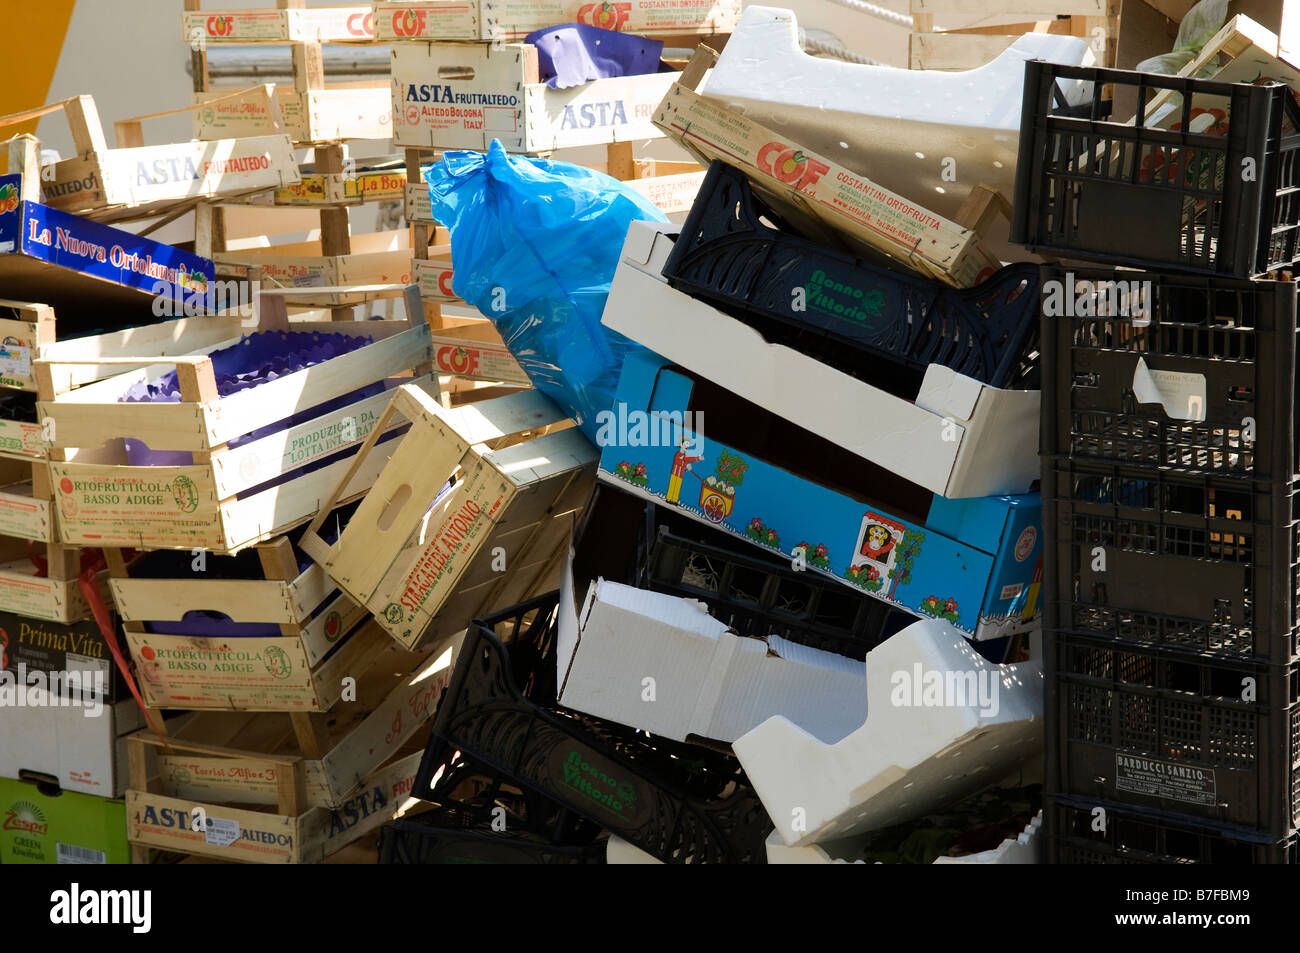 waste garbage baskets empty pile mess - Stock Image